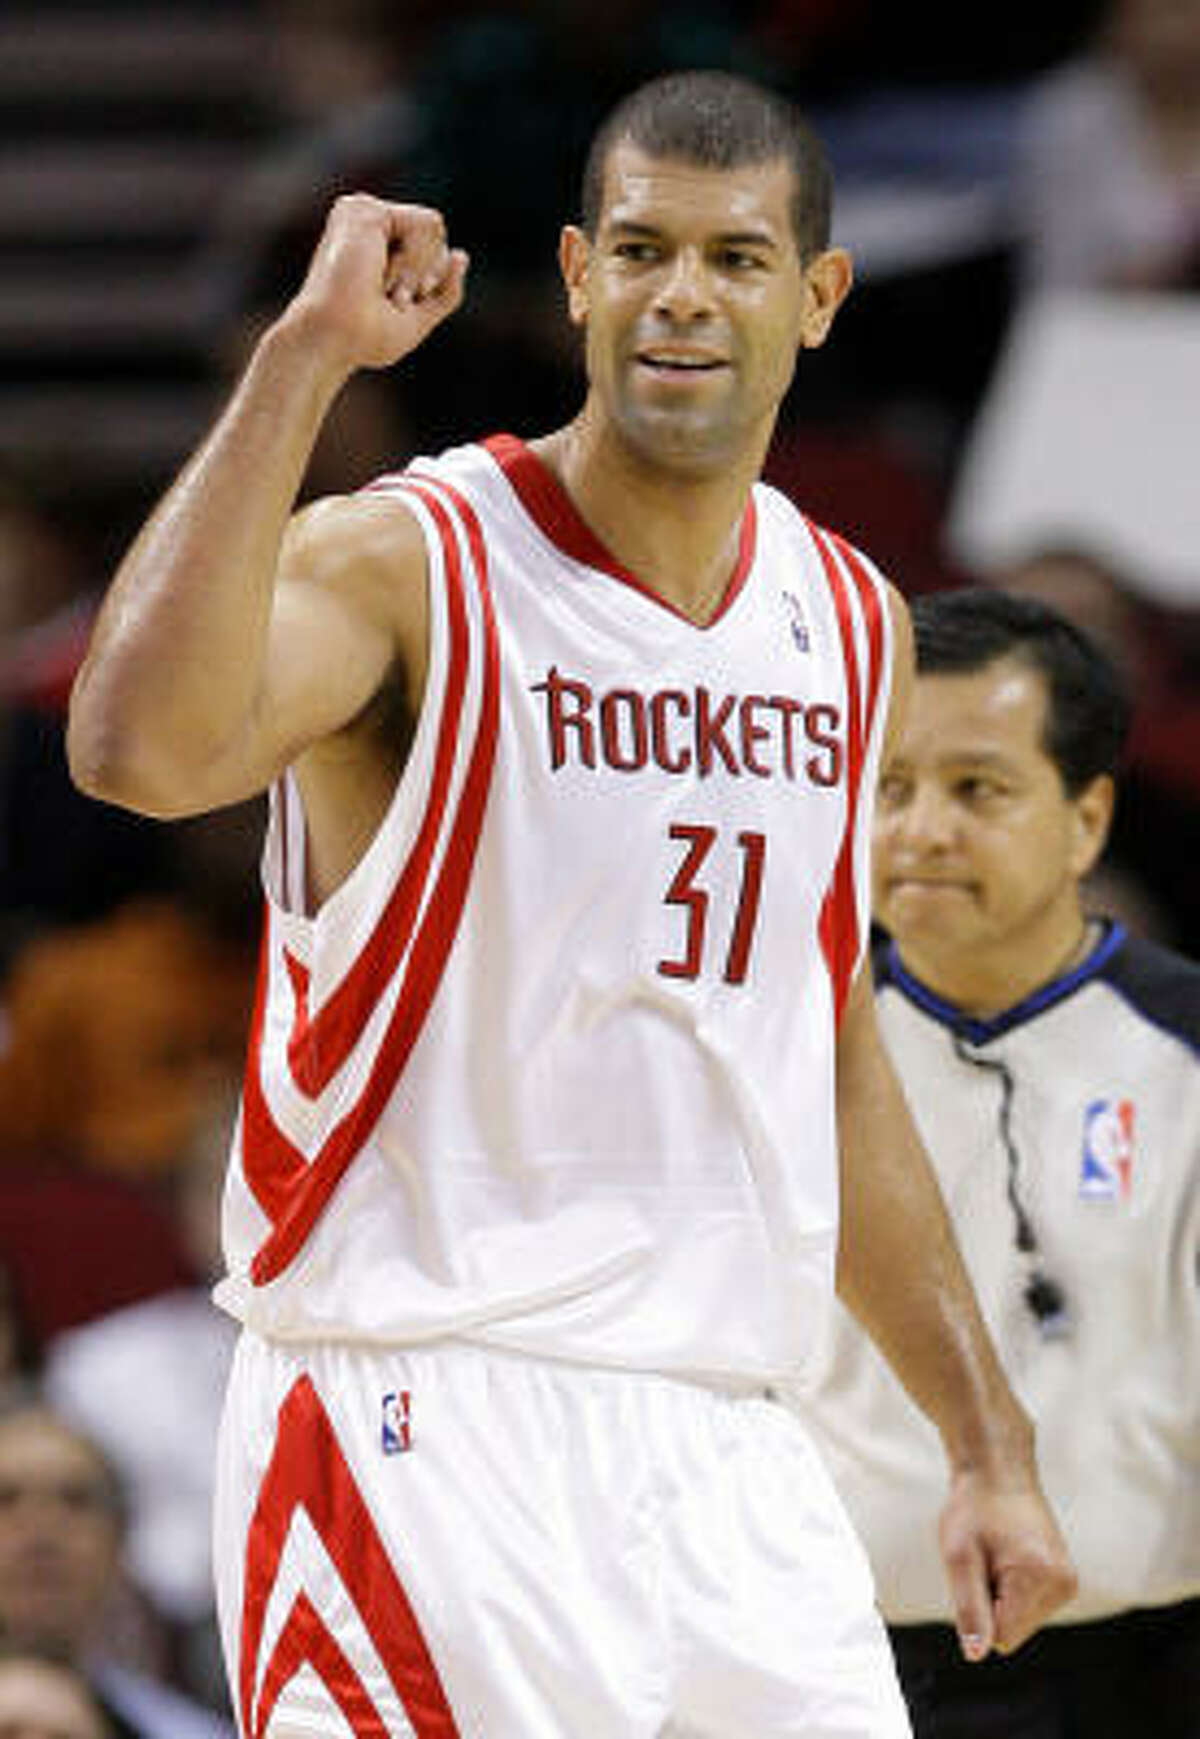 No. 31 Shane Battier Pos.: F |Height/weight: 6-8/220| School: Duke| Years in league: 9 Battier's role this season will be to guard the opponents' best shooters.